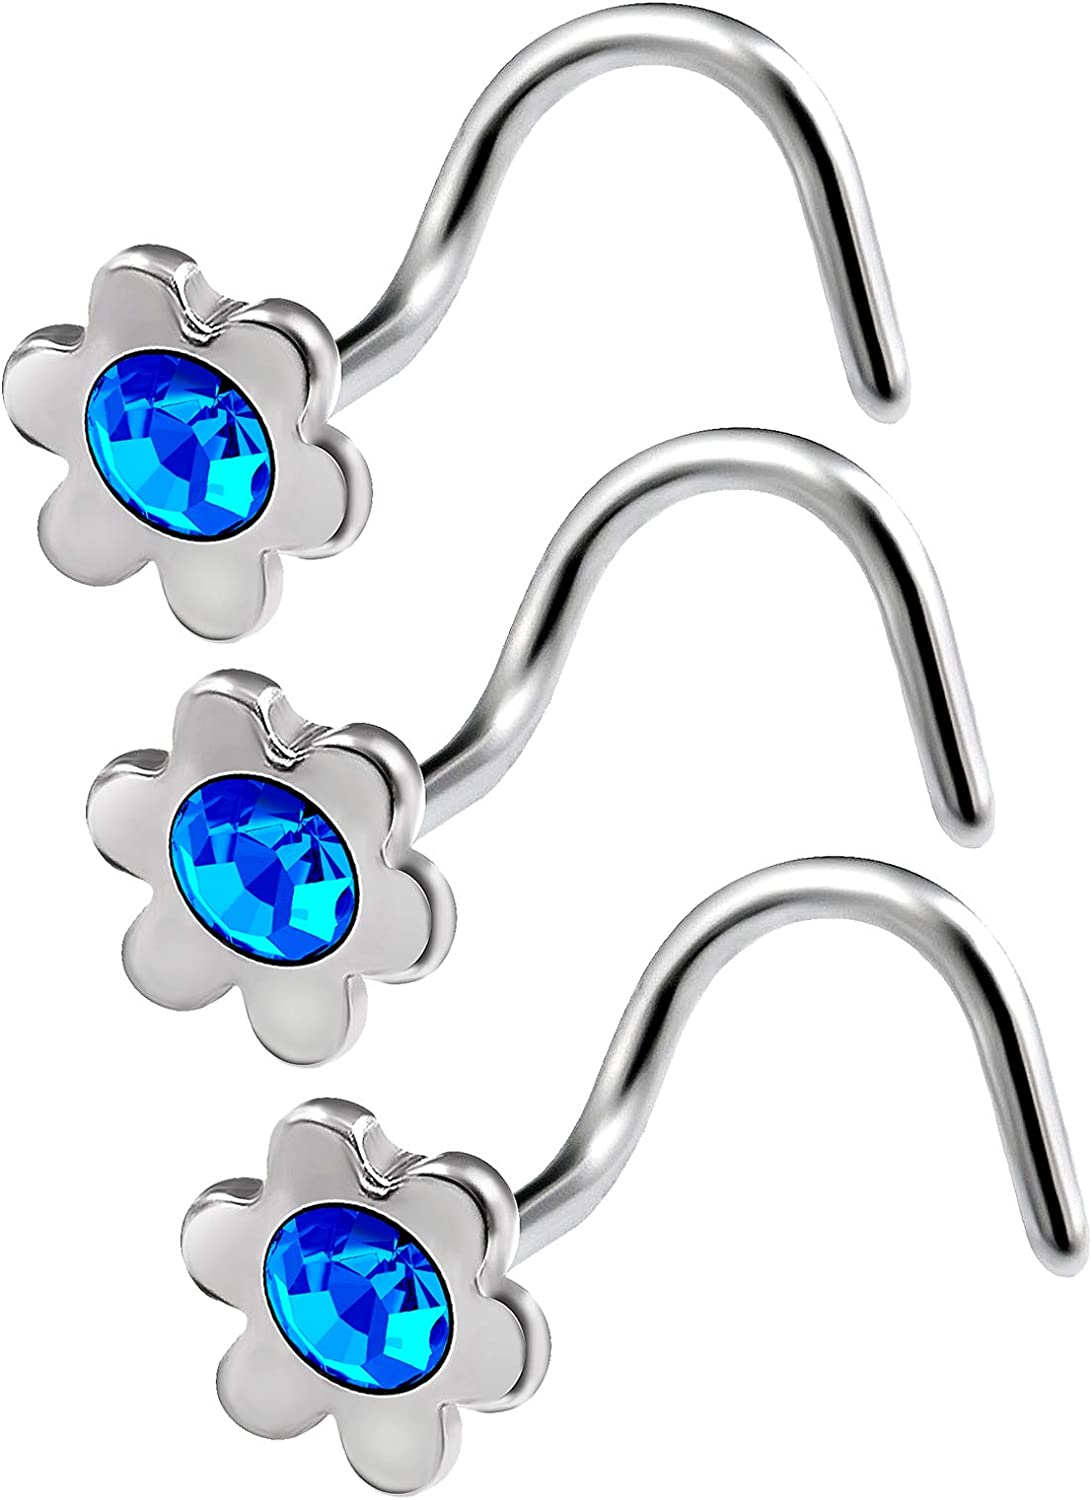 MATIGA 3Pcs Surgical Steel Flower Shaped top 20 Gauge 9/32 7mm Nose Ring Studs Screw Piercing Jewelry Crystal More Choices